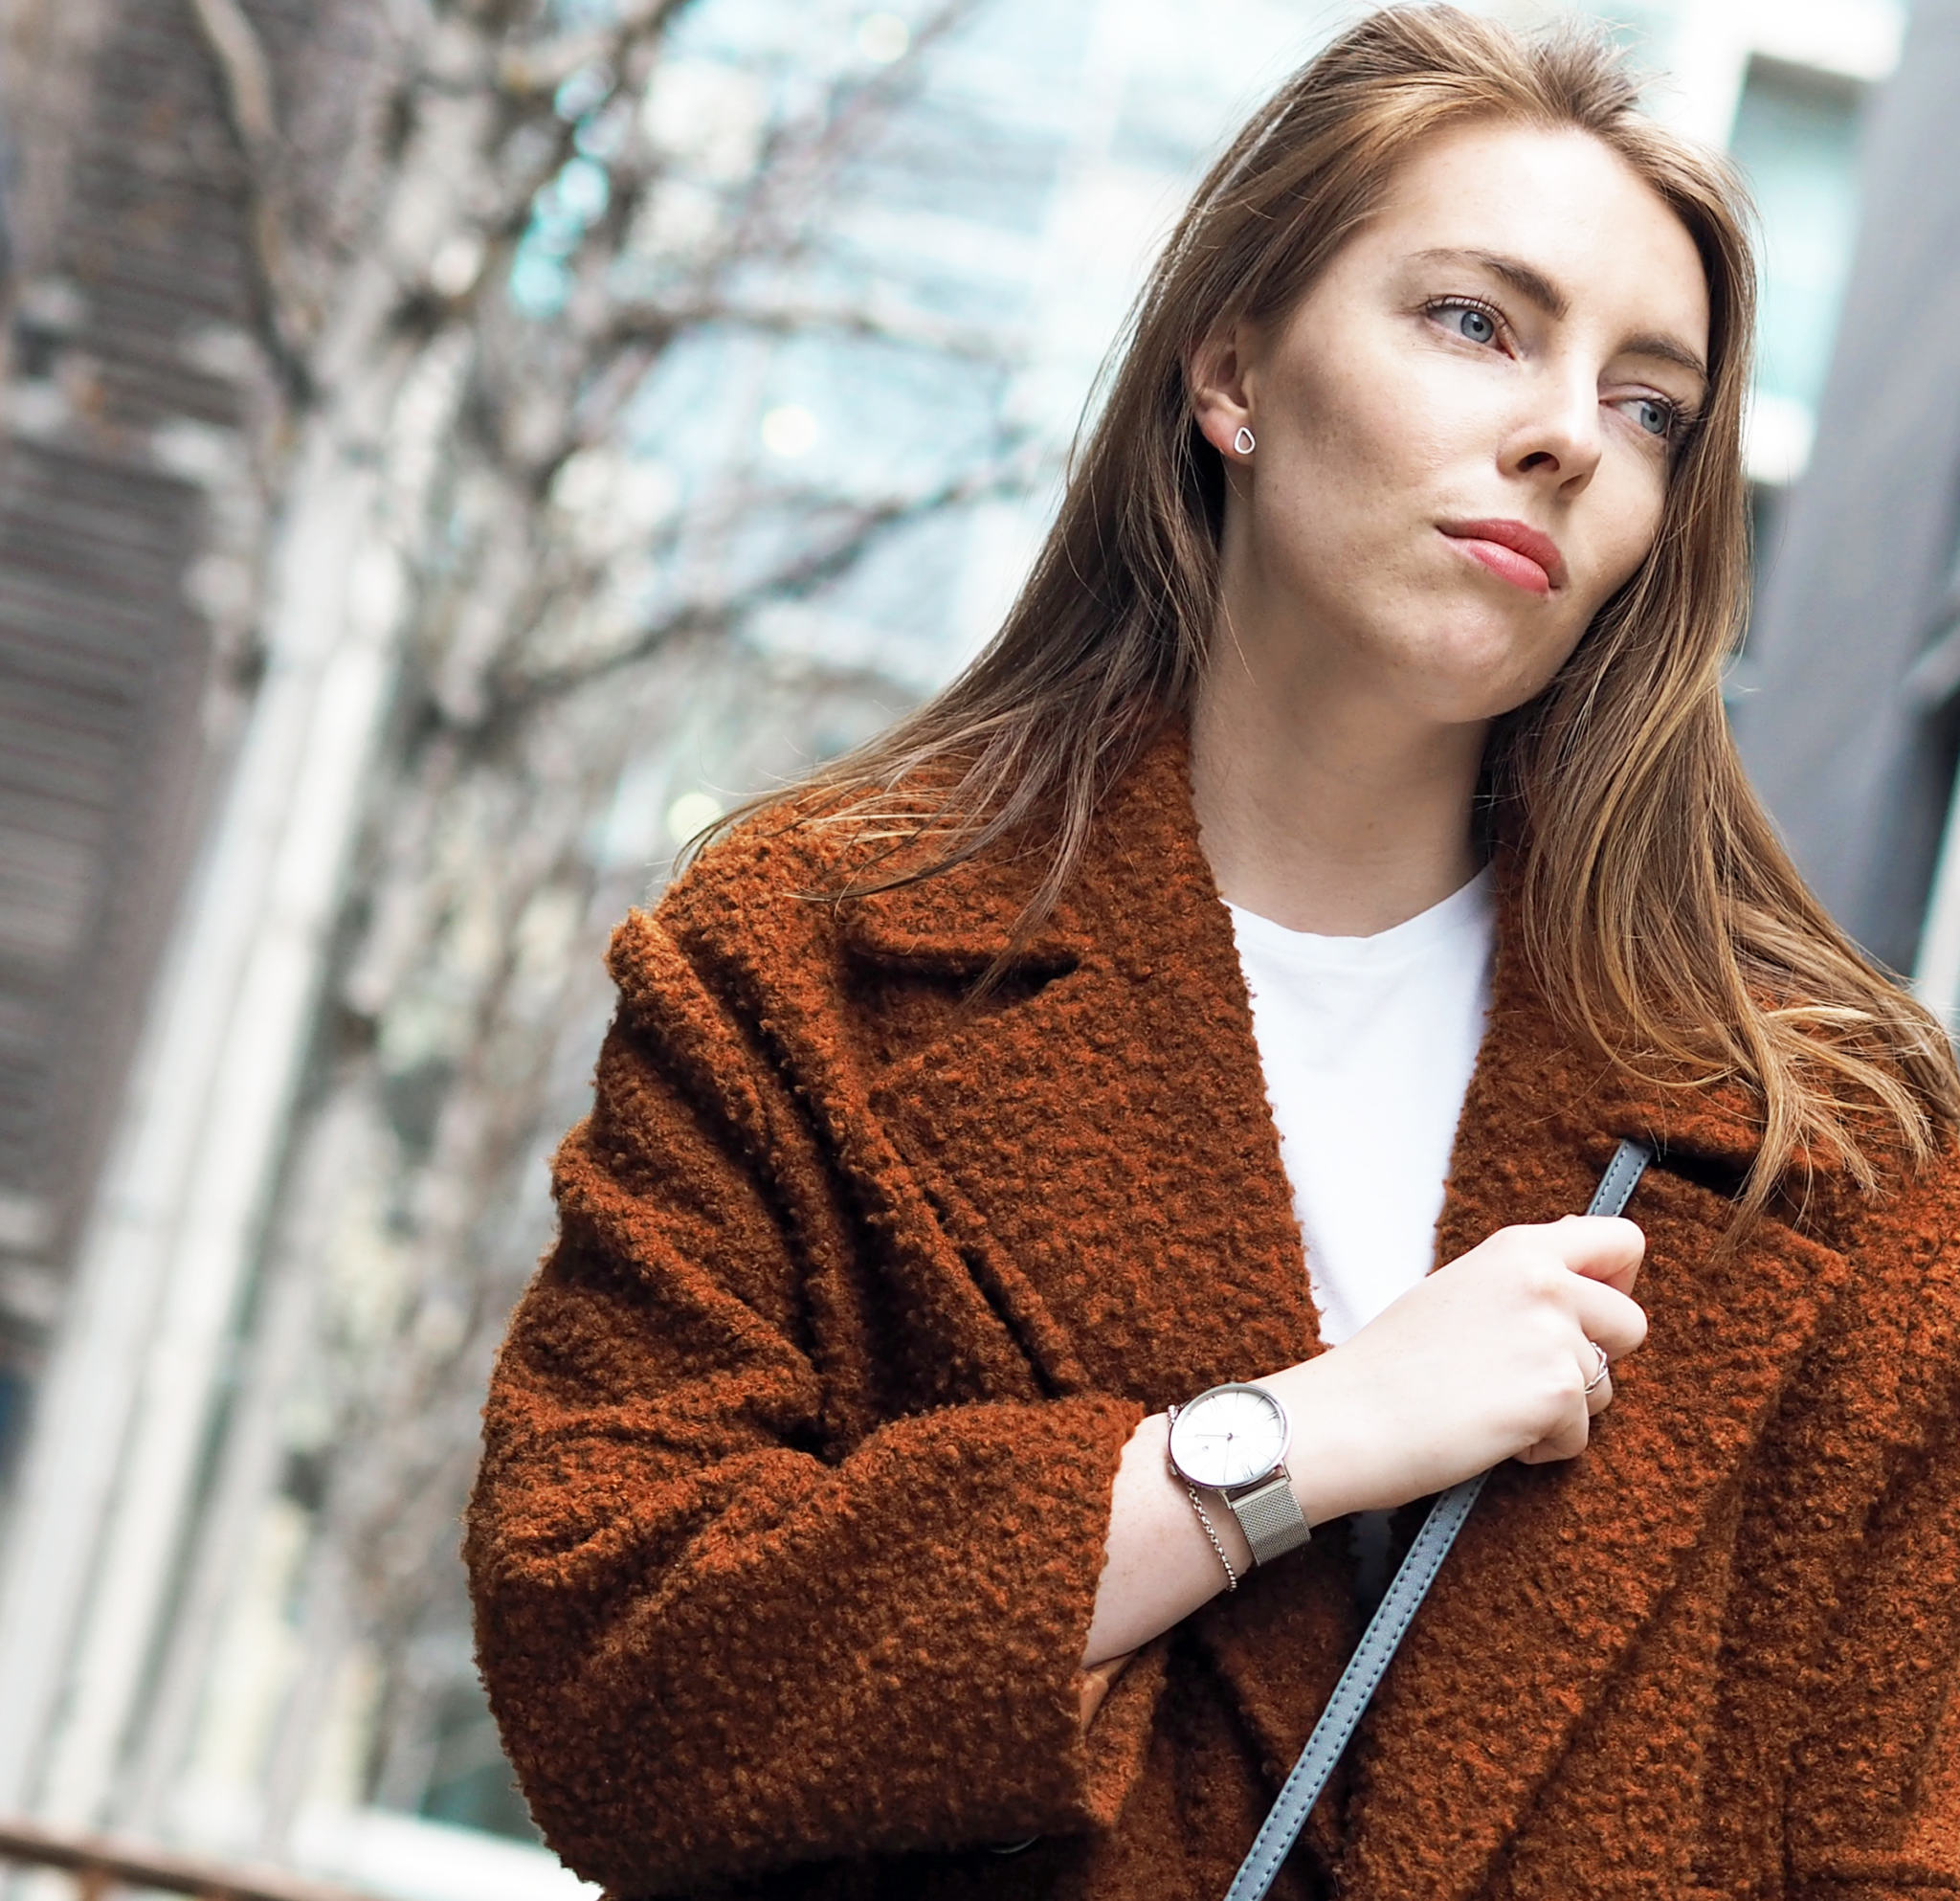 Adexe Chainmail strap Watch Topshop Boucle Coat